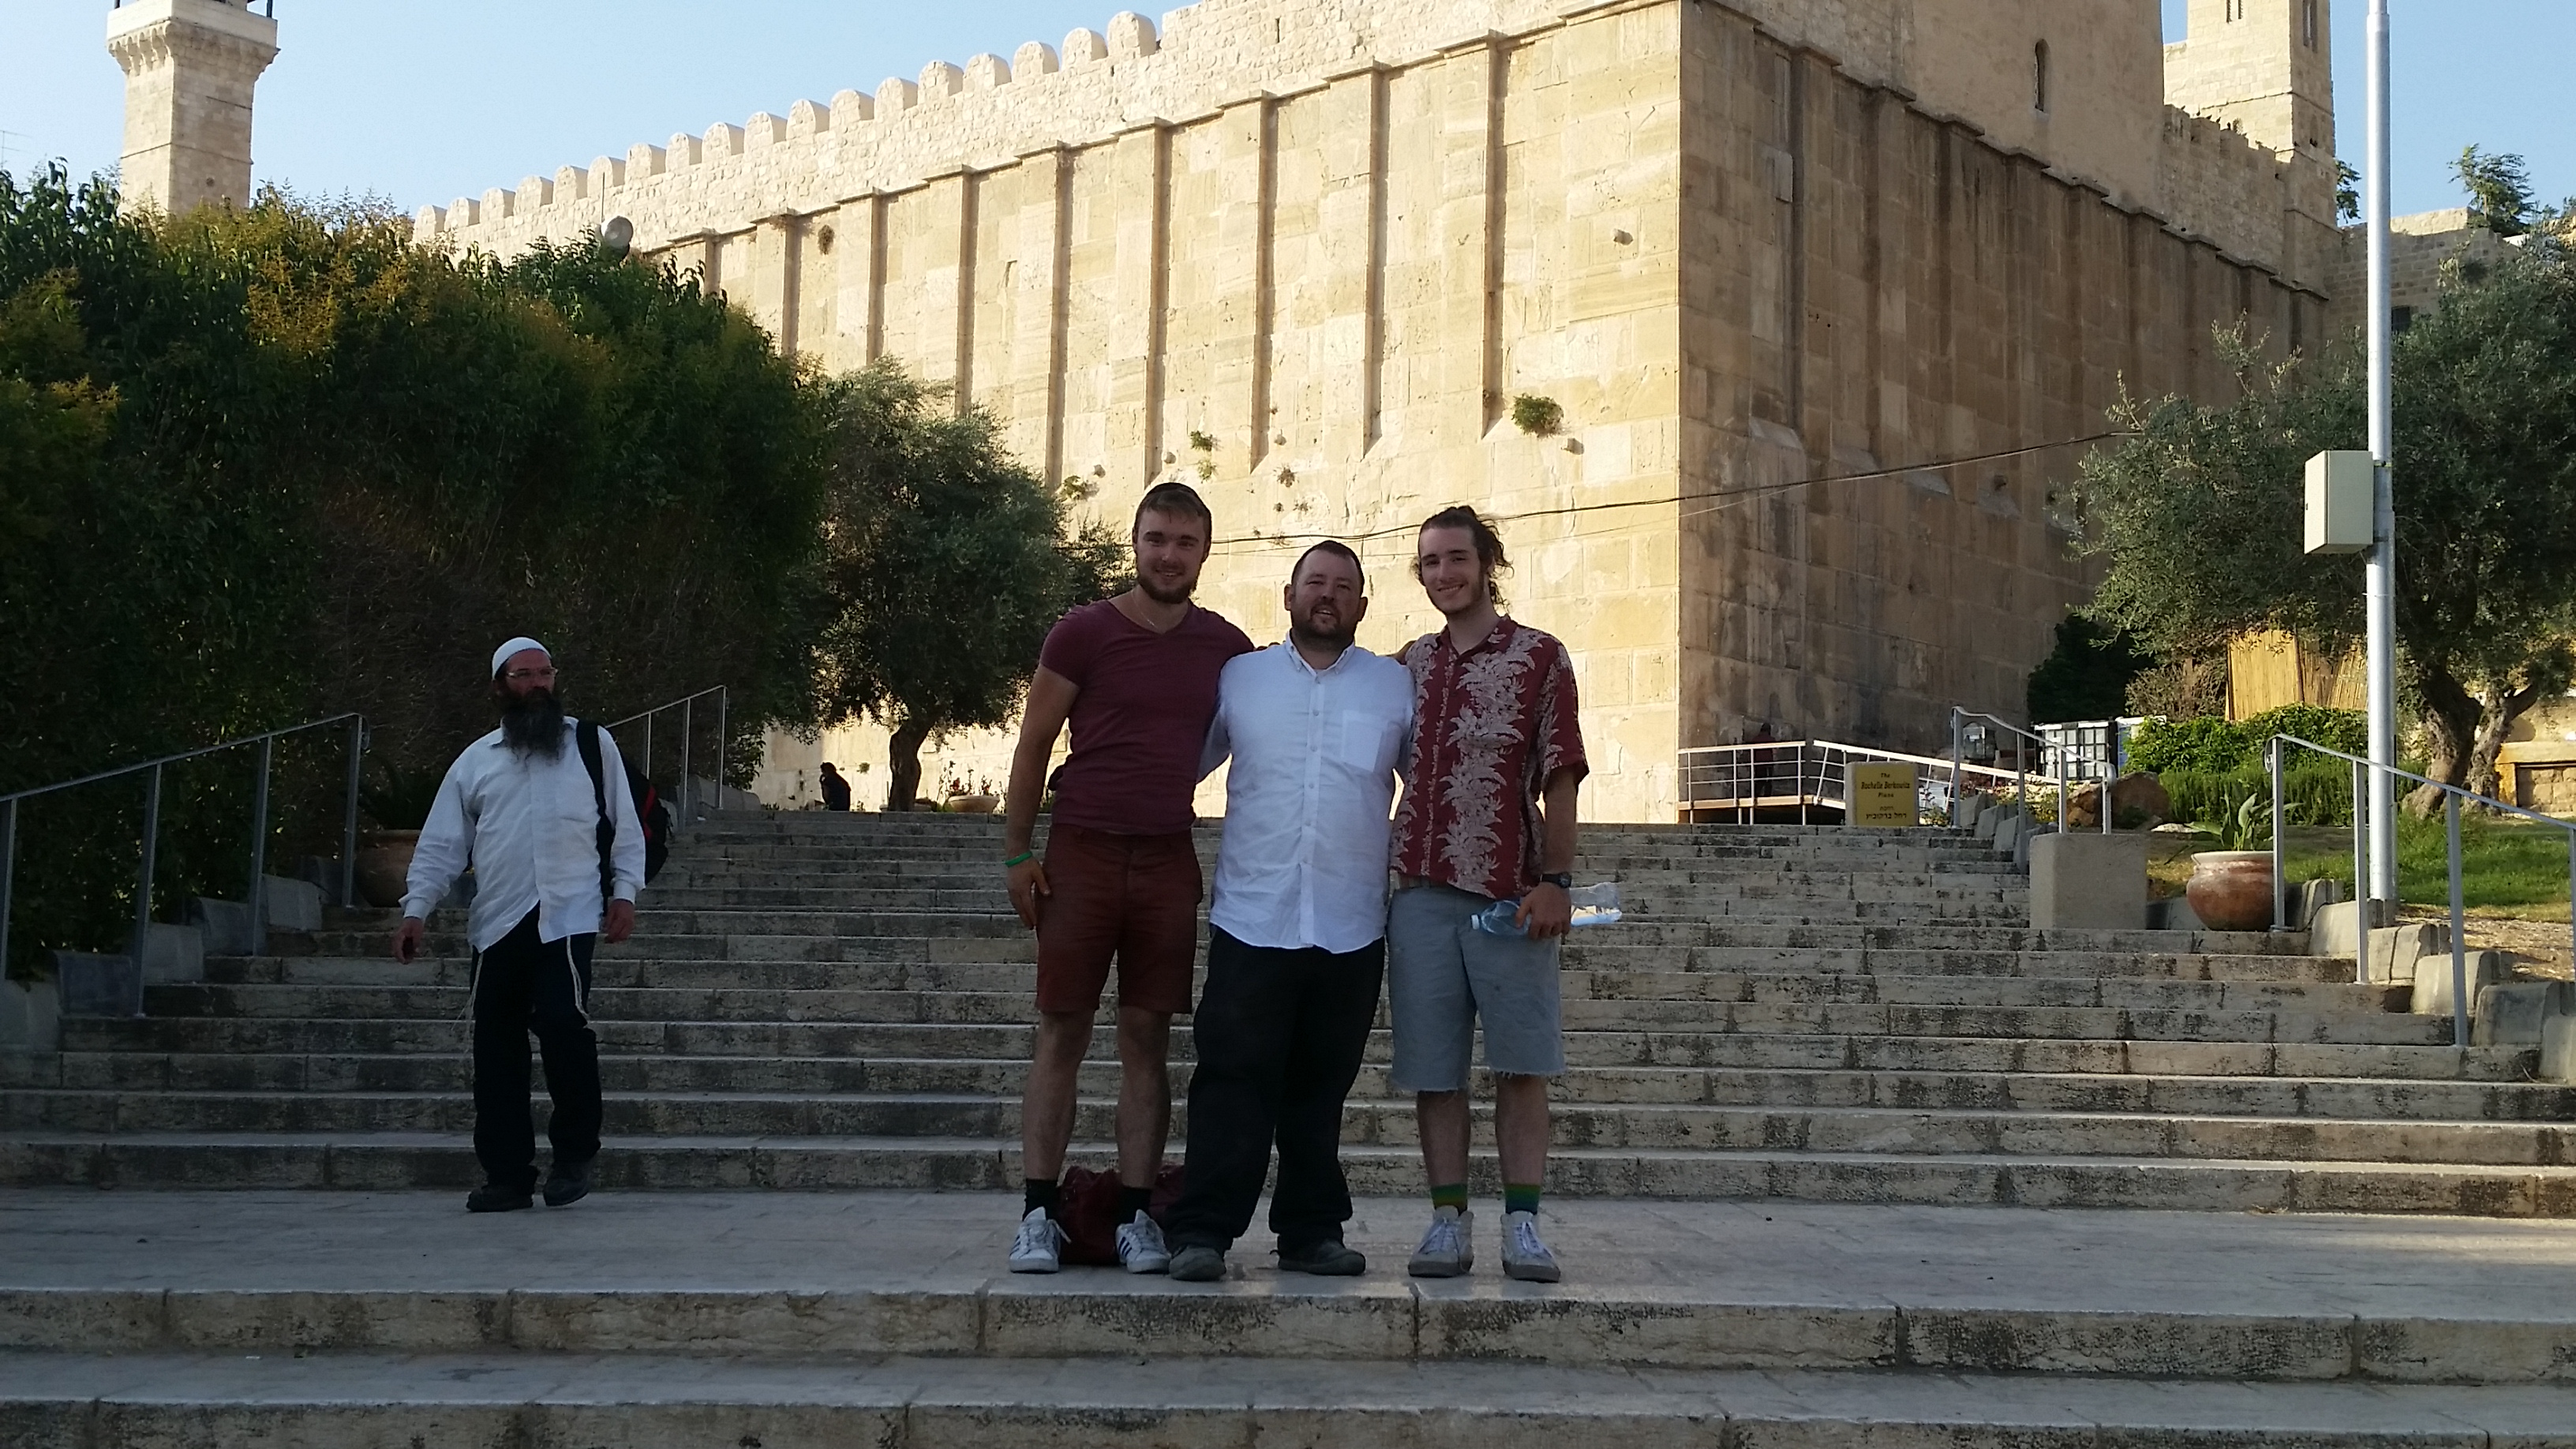 Outside the Tomb of the Patriarchs!